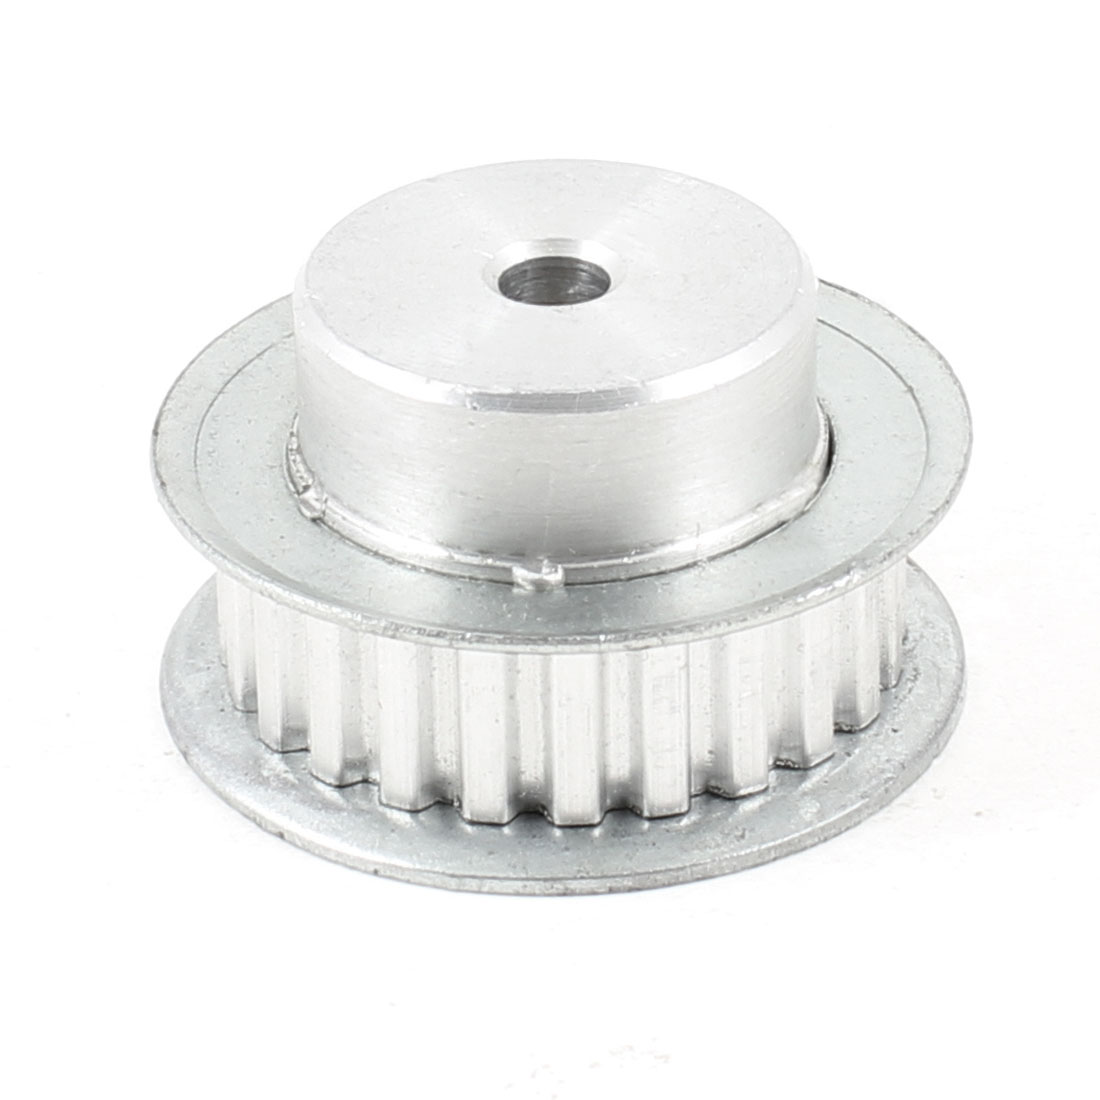 Silver Tone Aluminum Alloy XL Type 24 Teeth 6.2mm Pilot Bore Timing Pulley